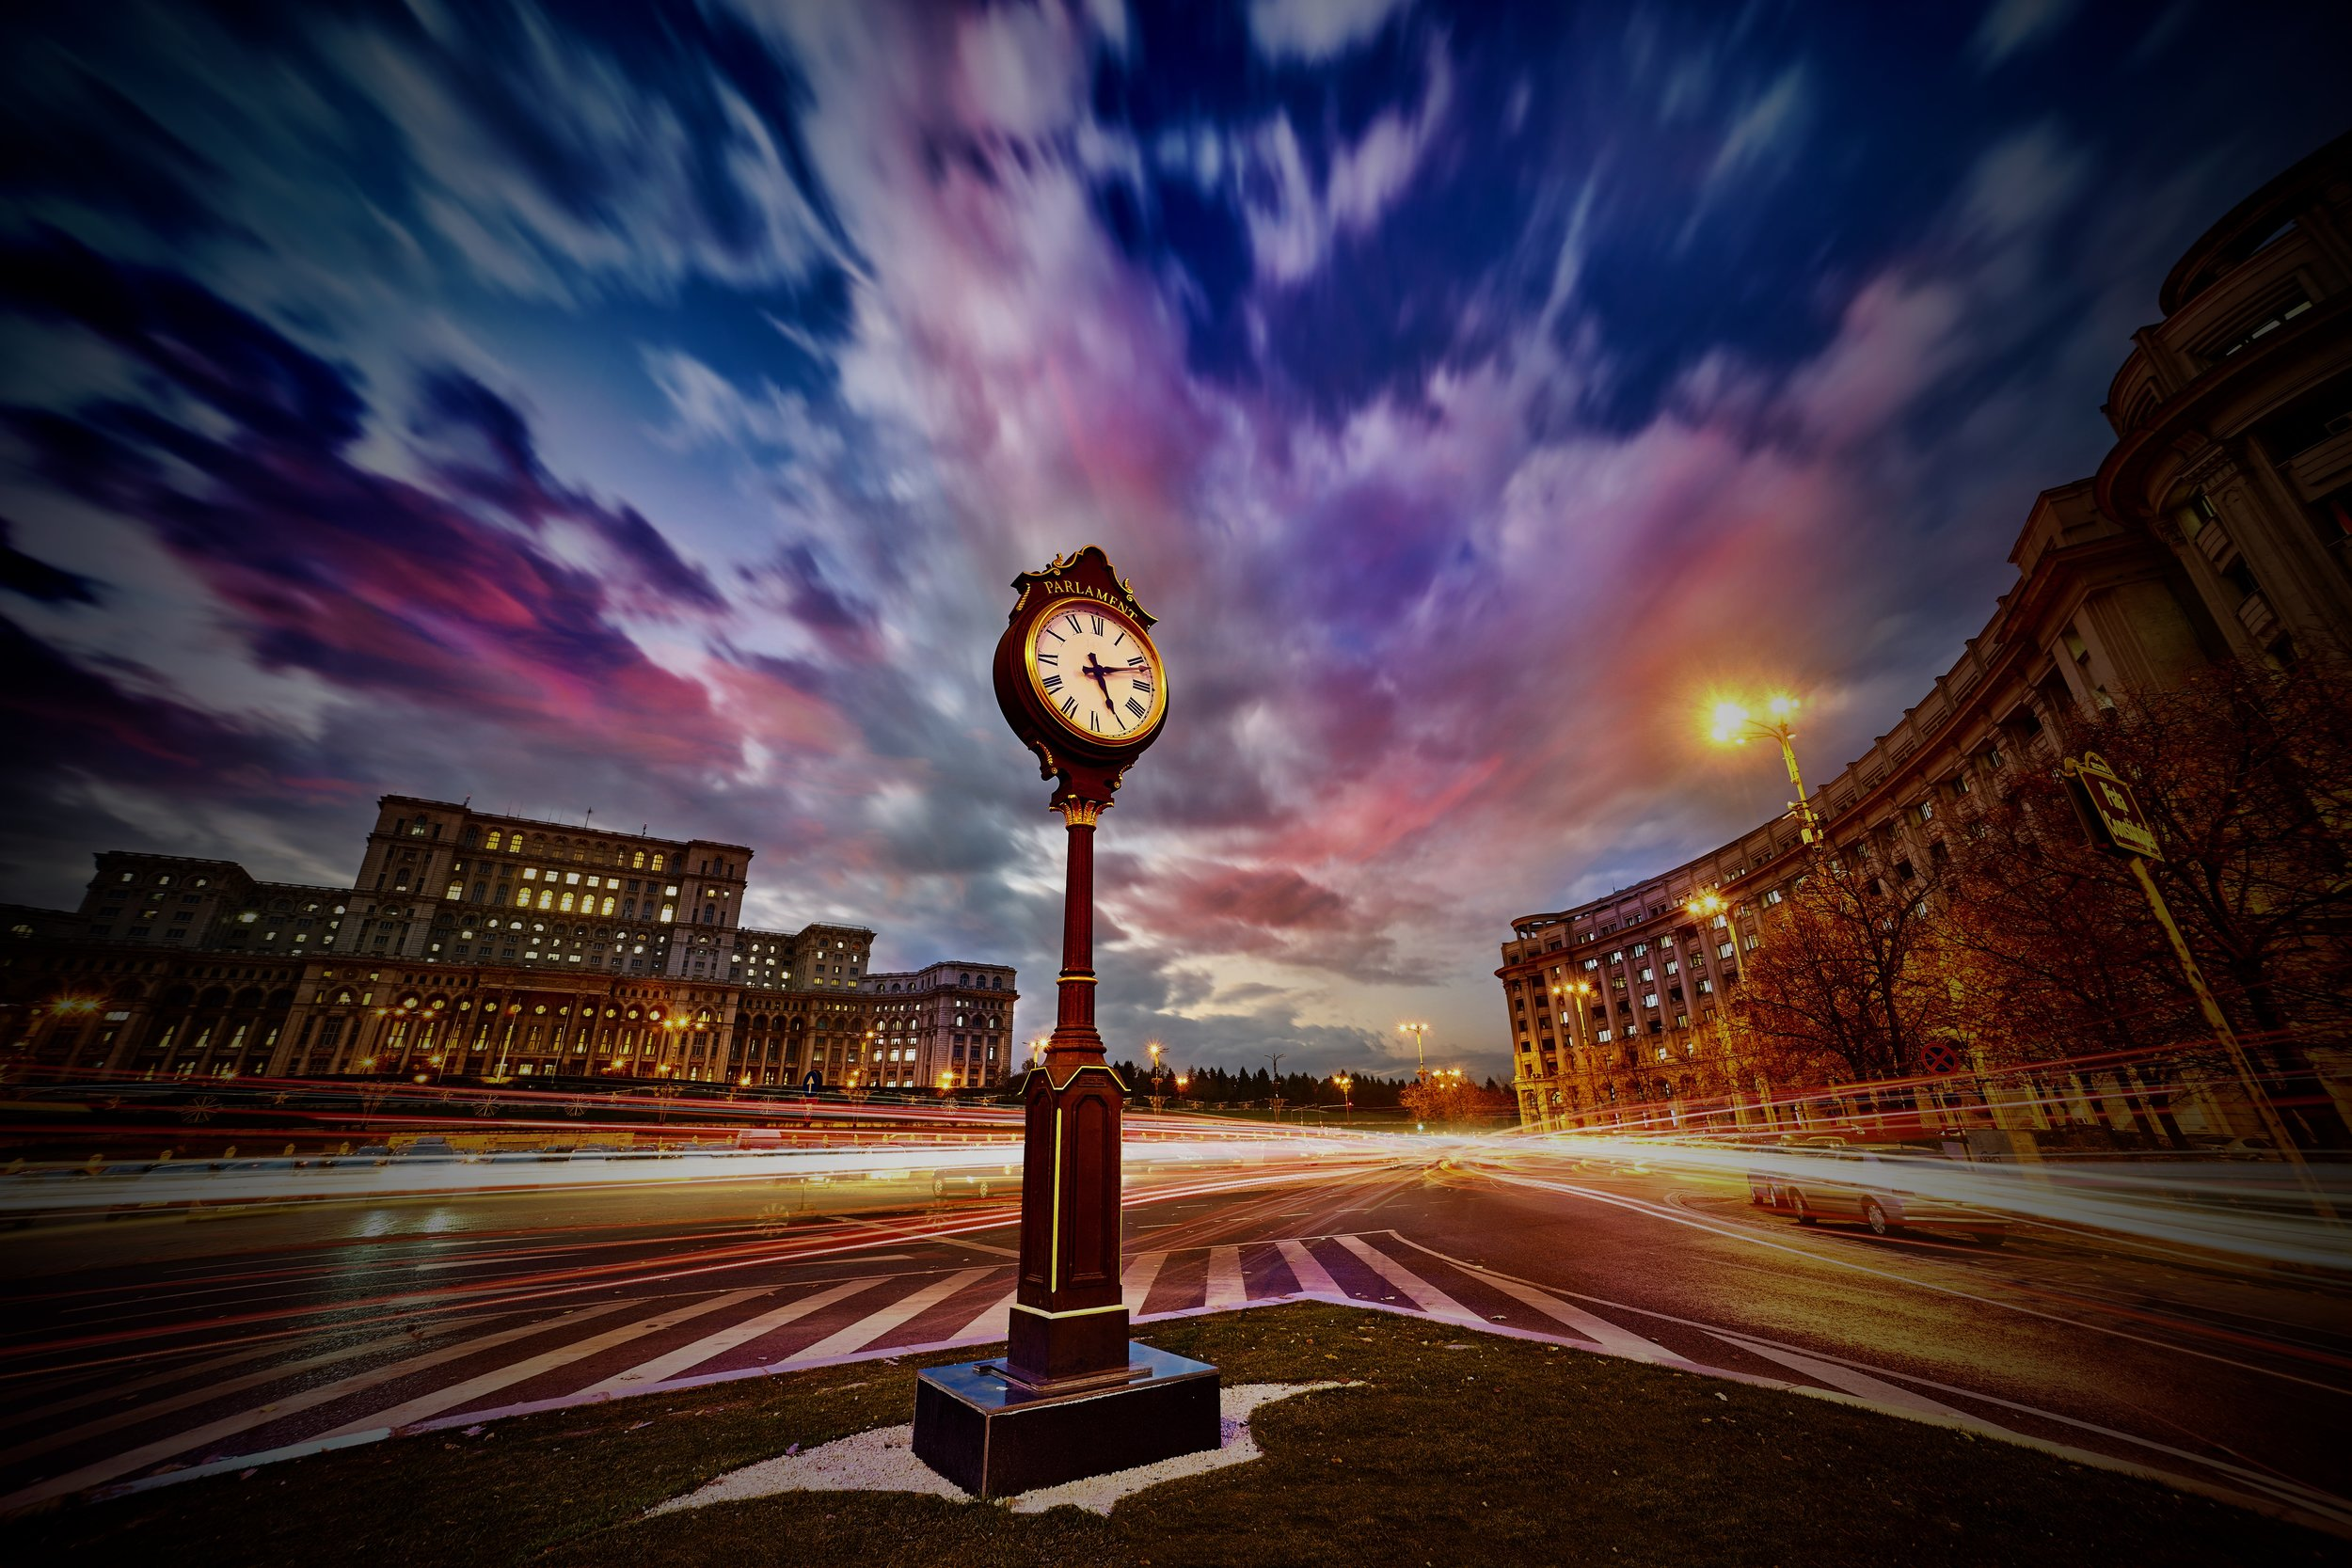 Time is passing…and always more quickly than you think. Will you join us in Bucharest?  Image: A view of a clock near the People's Palace in Bucharest, Romania.